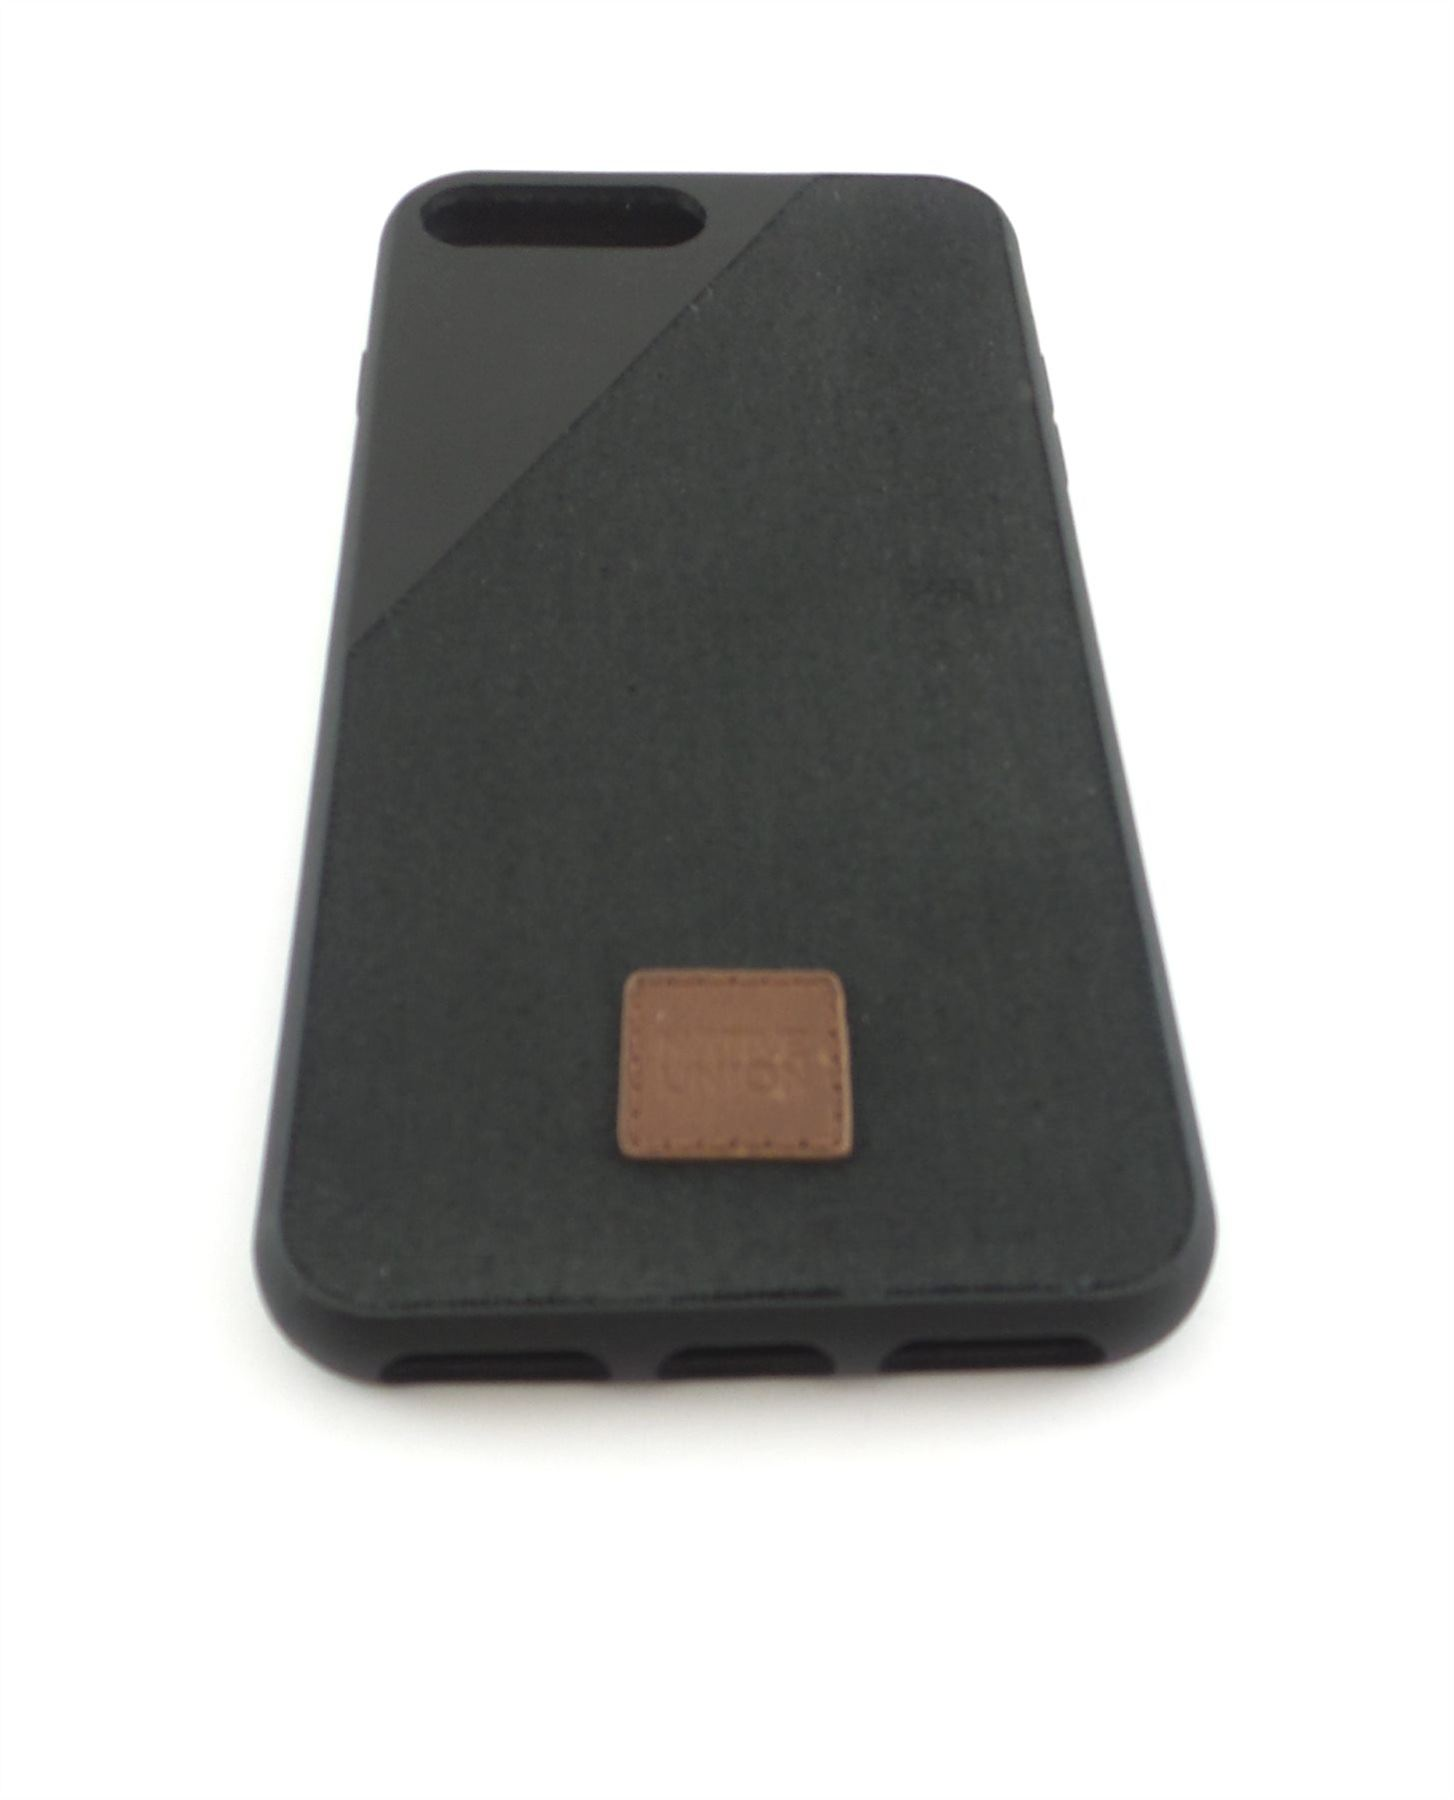 native union clic 360 canvas case for iphone 7 plus black clic360